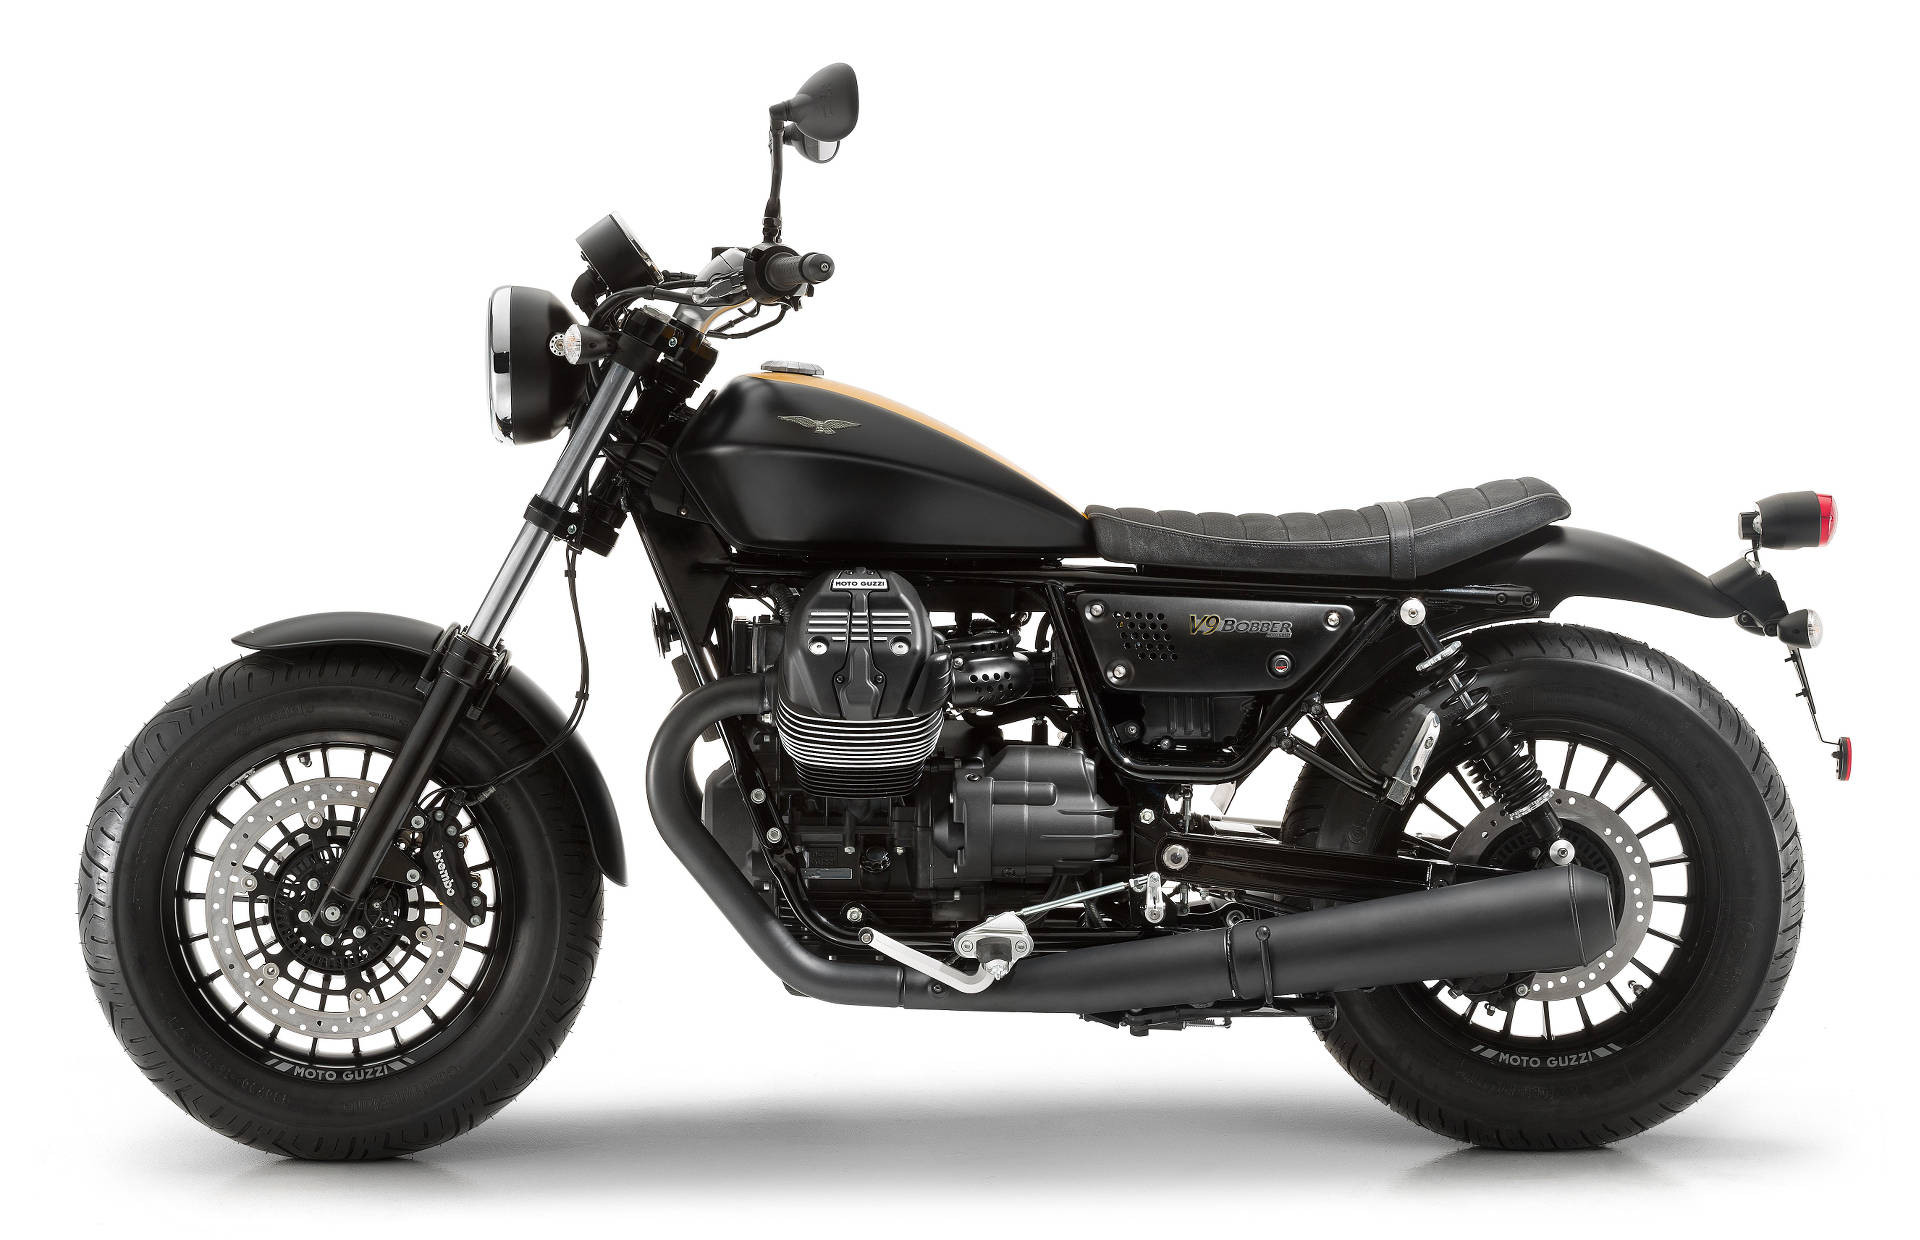 New Moto Guzzi V9 Roamer And Bobber Feature 850cc V-Twin